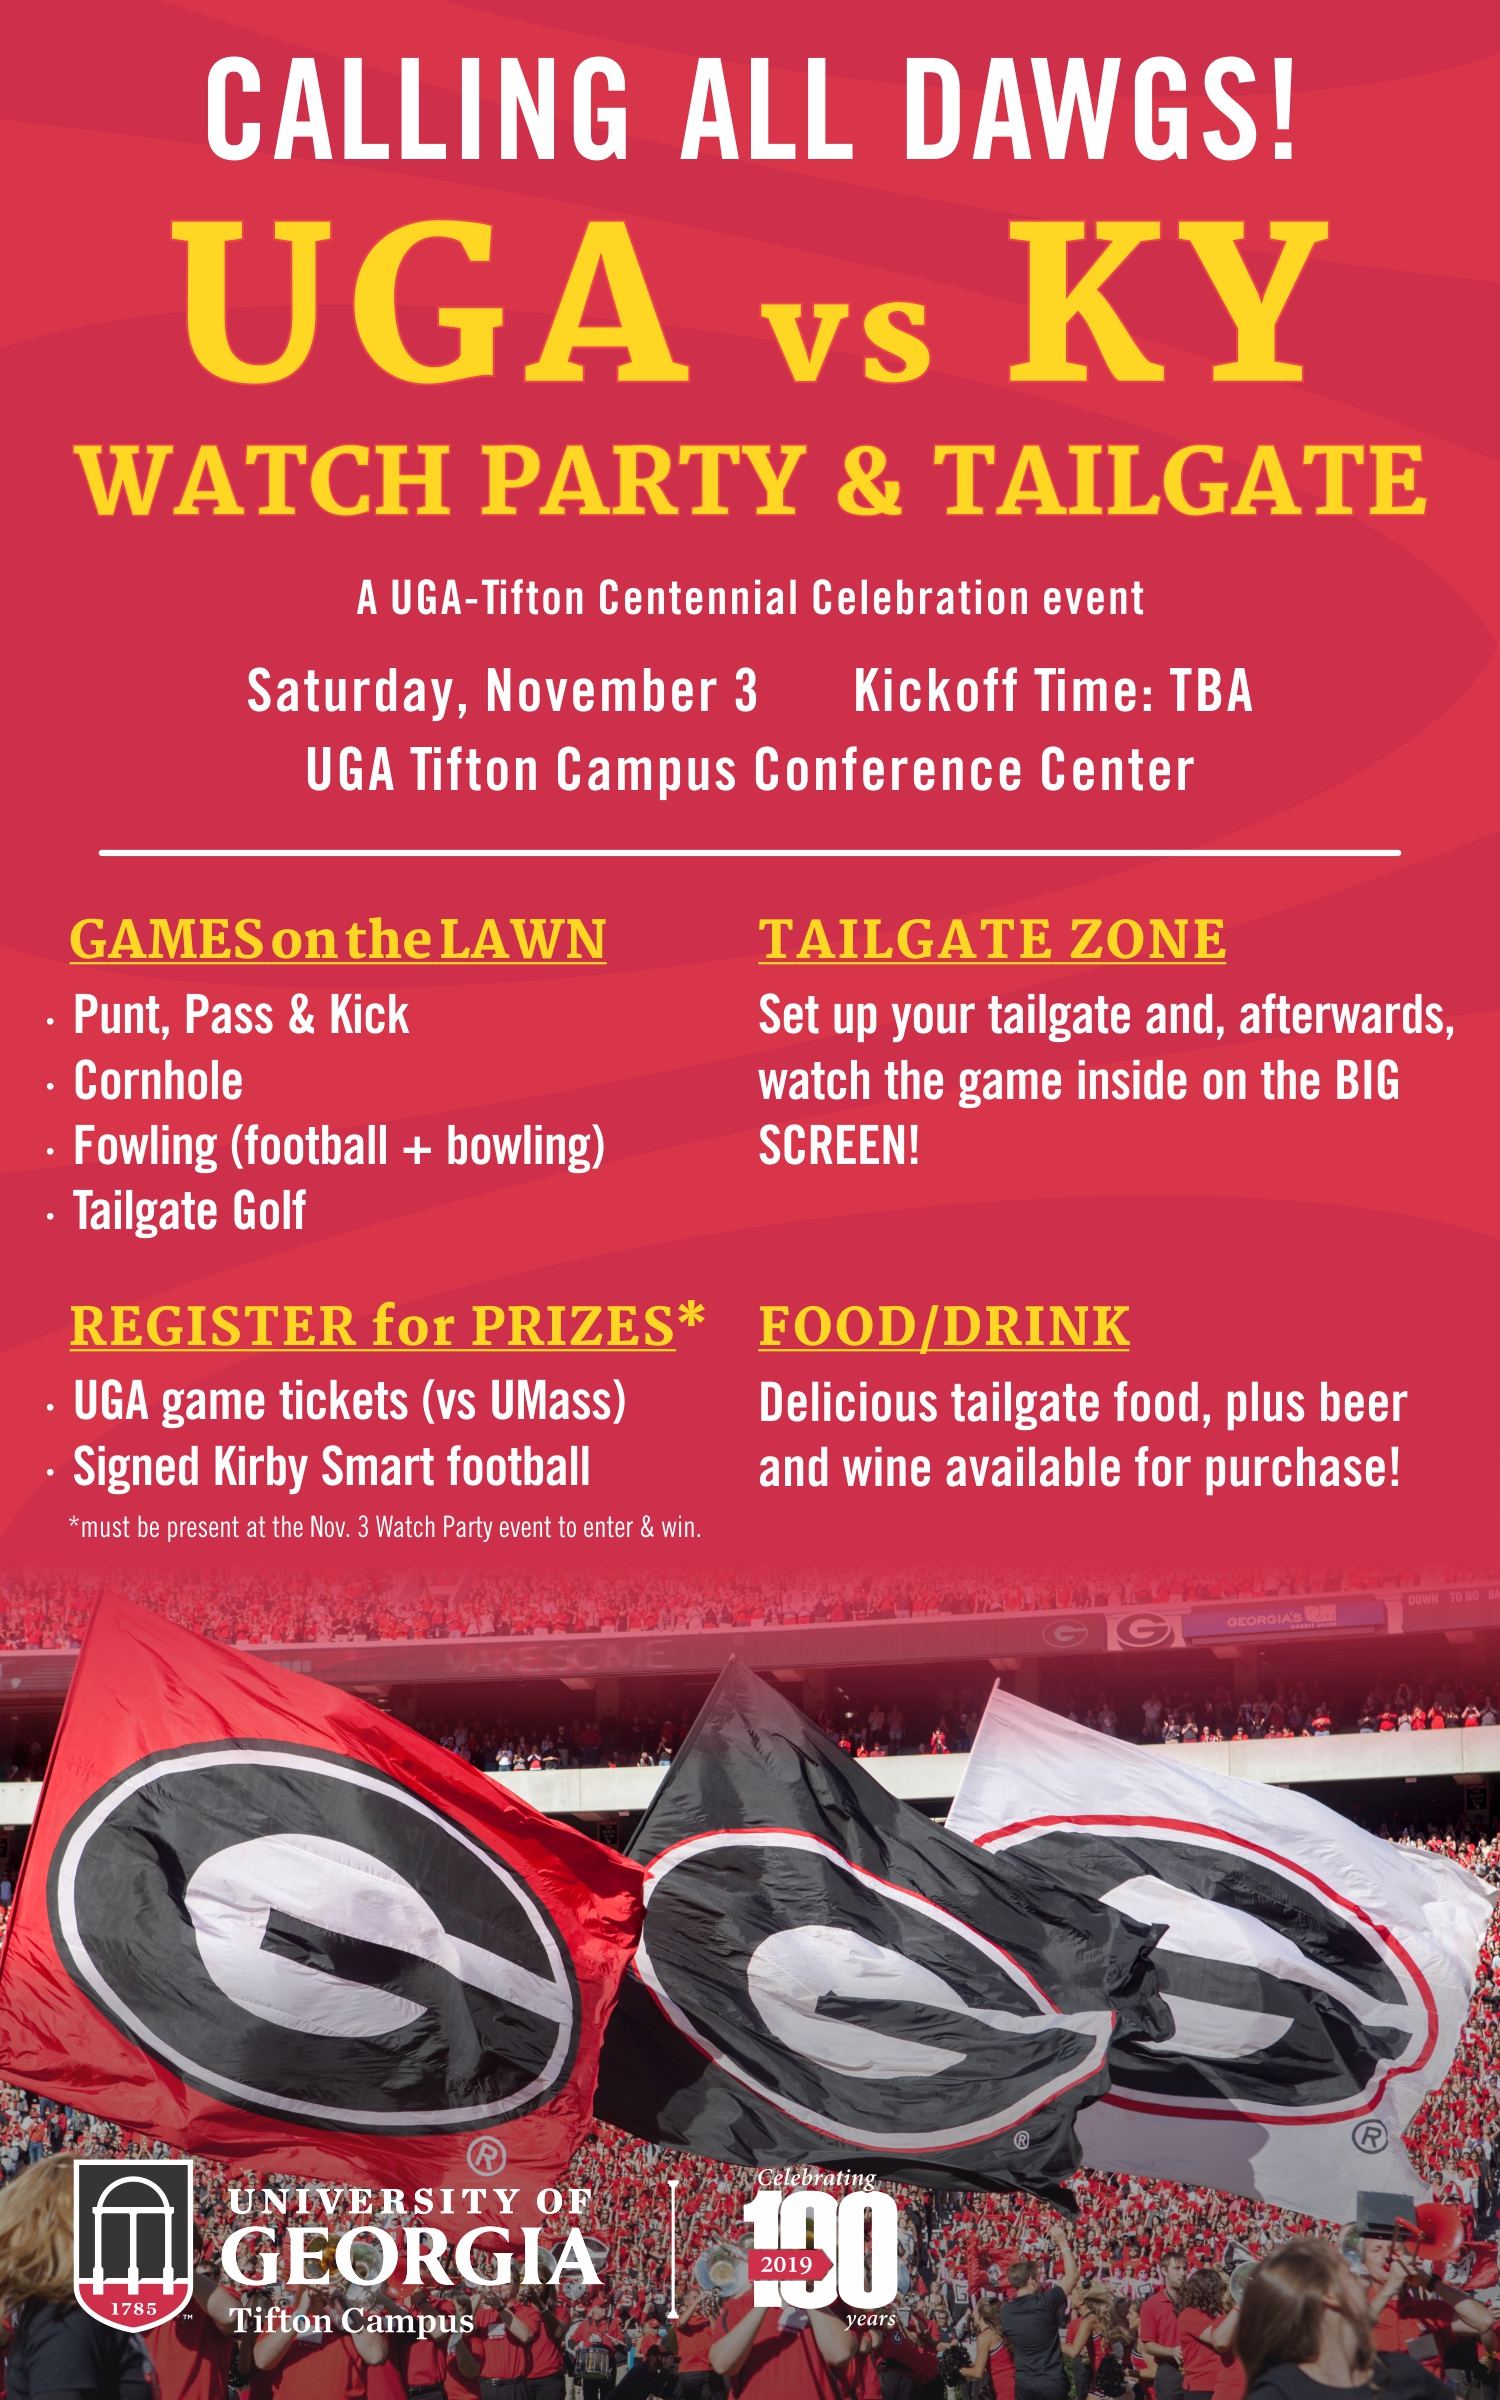 UGA vs KY Watch Party and Tailgate